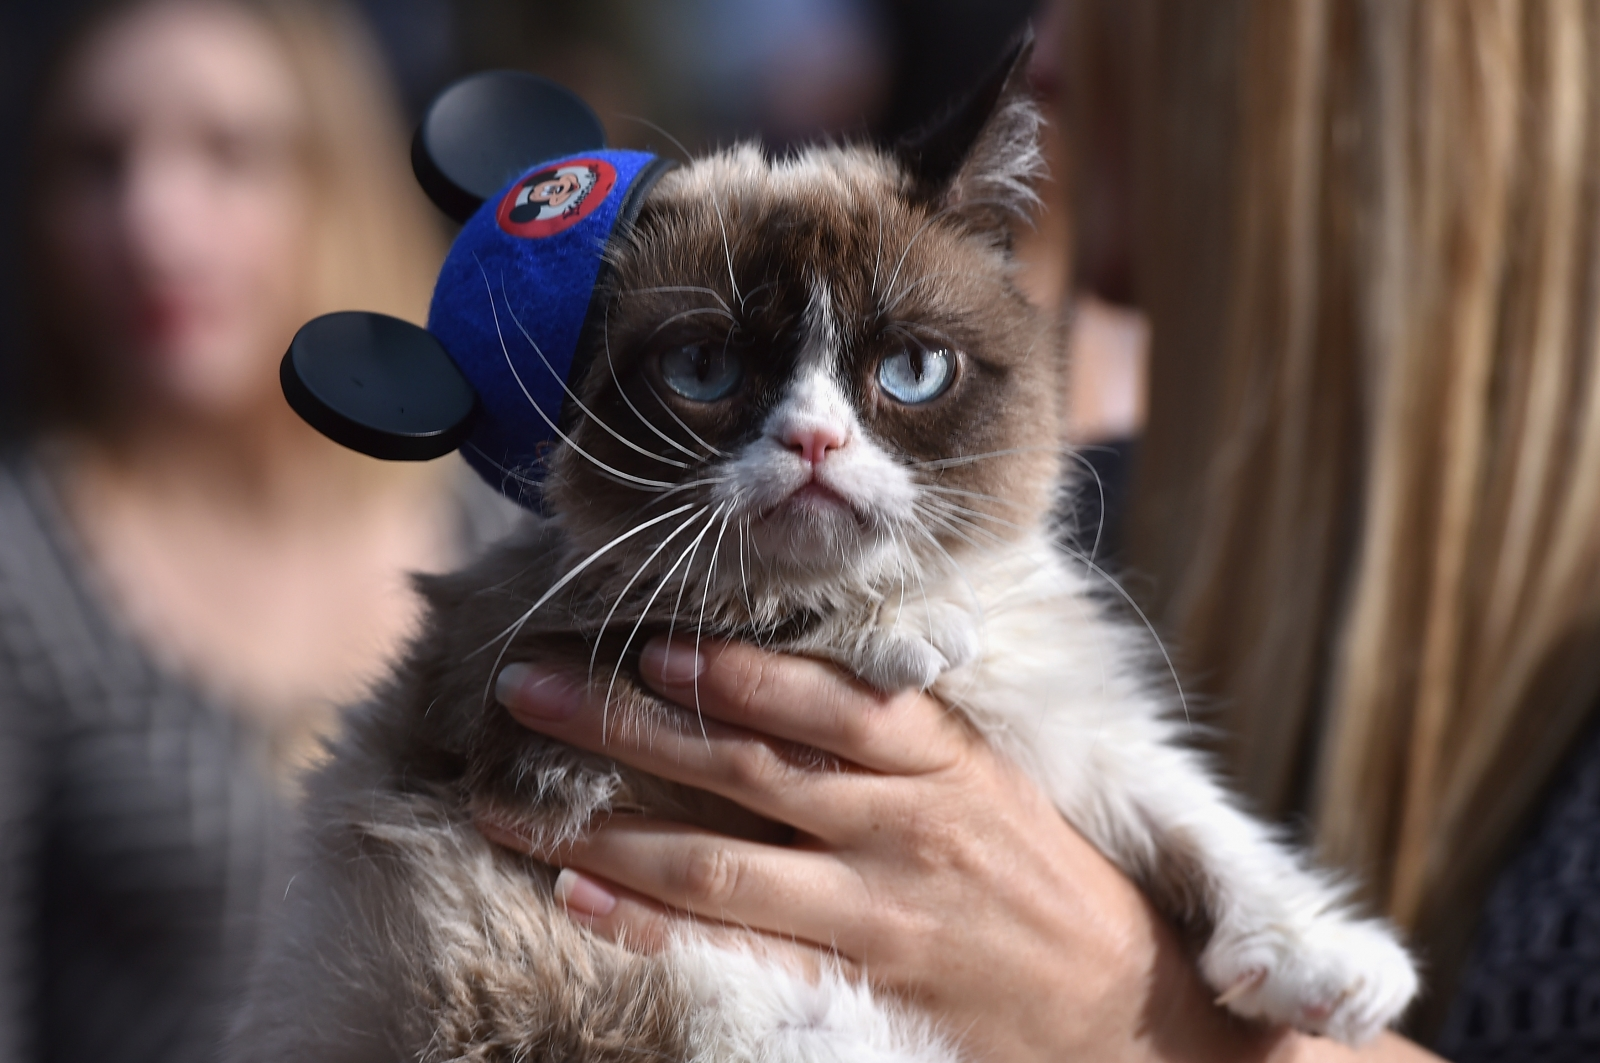 smallest cat ever grumpy cat - Smallest Cat In The World Guinness 2015